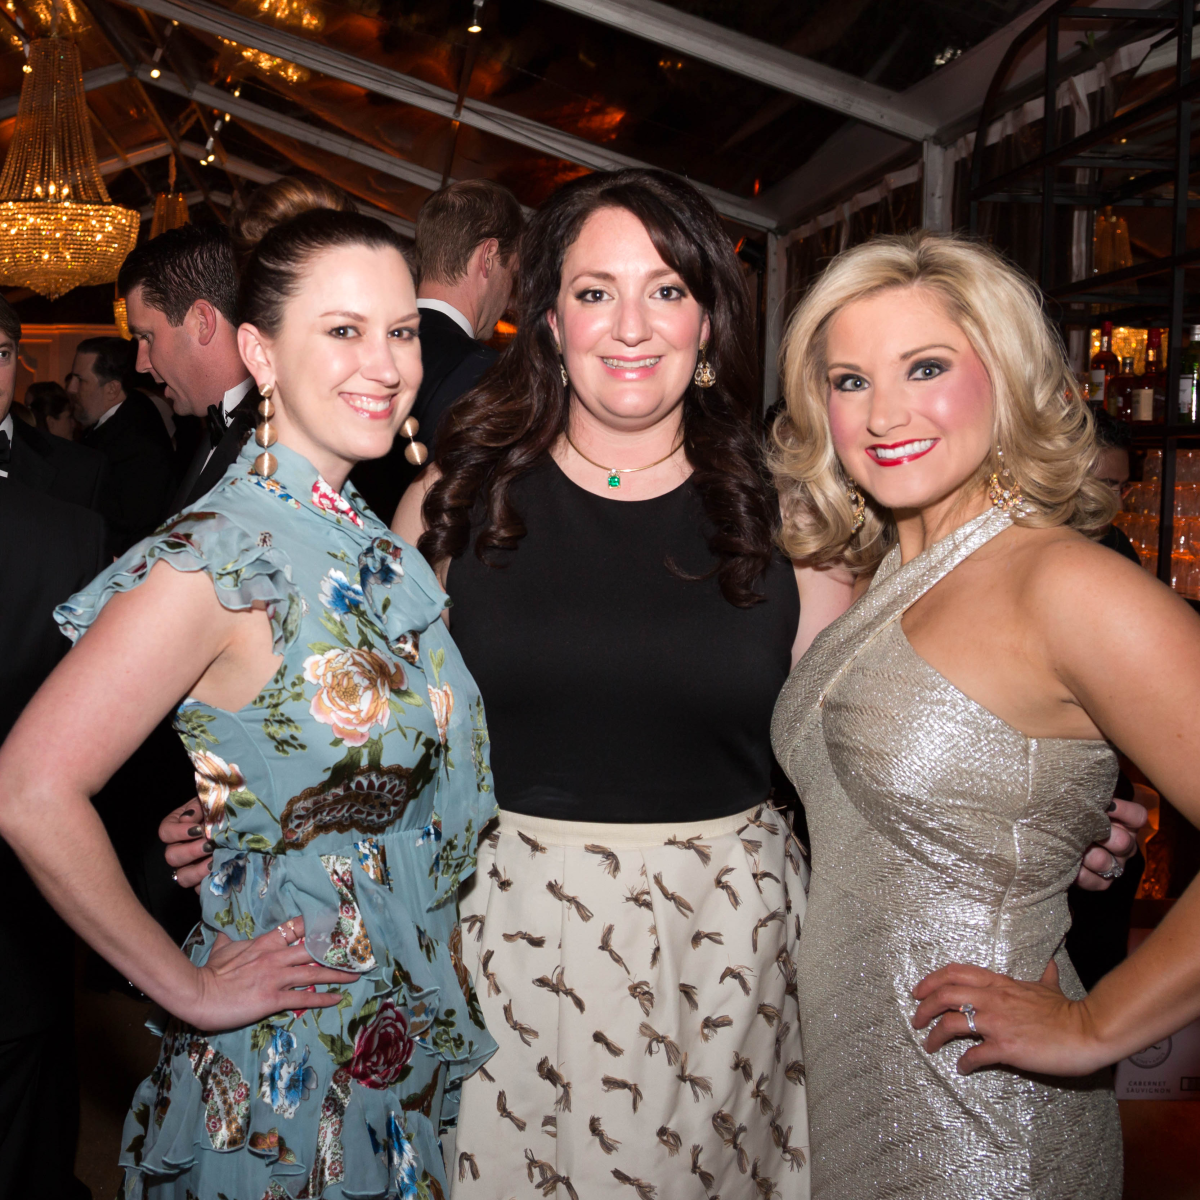 Houston, JLH Charity Ball, February 2018, Jennifer Howard, Mitra Woody, Selby Bush